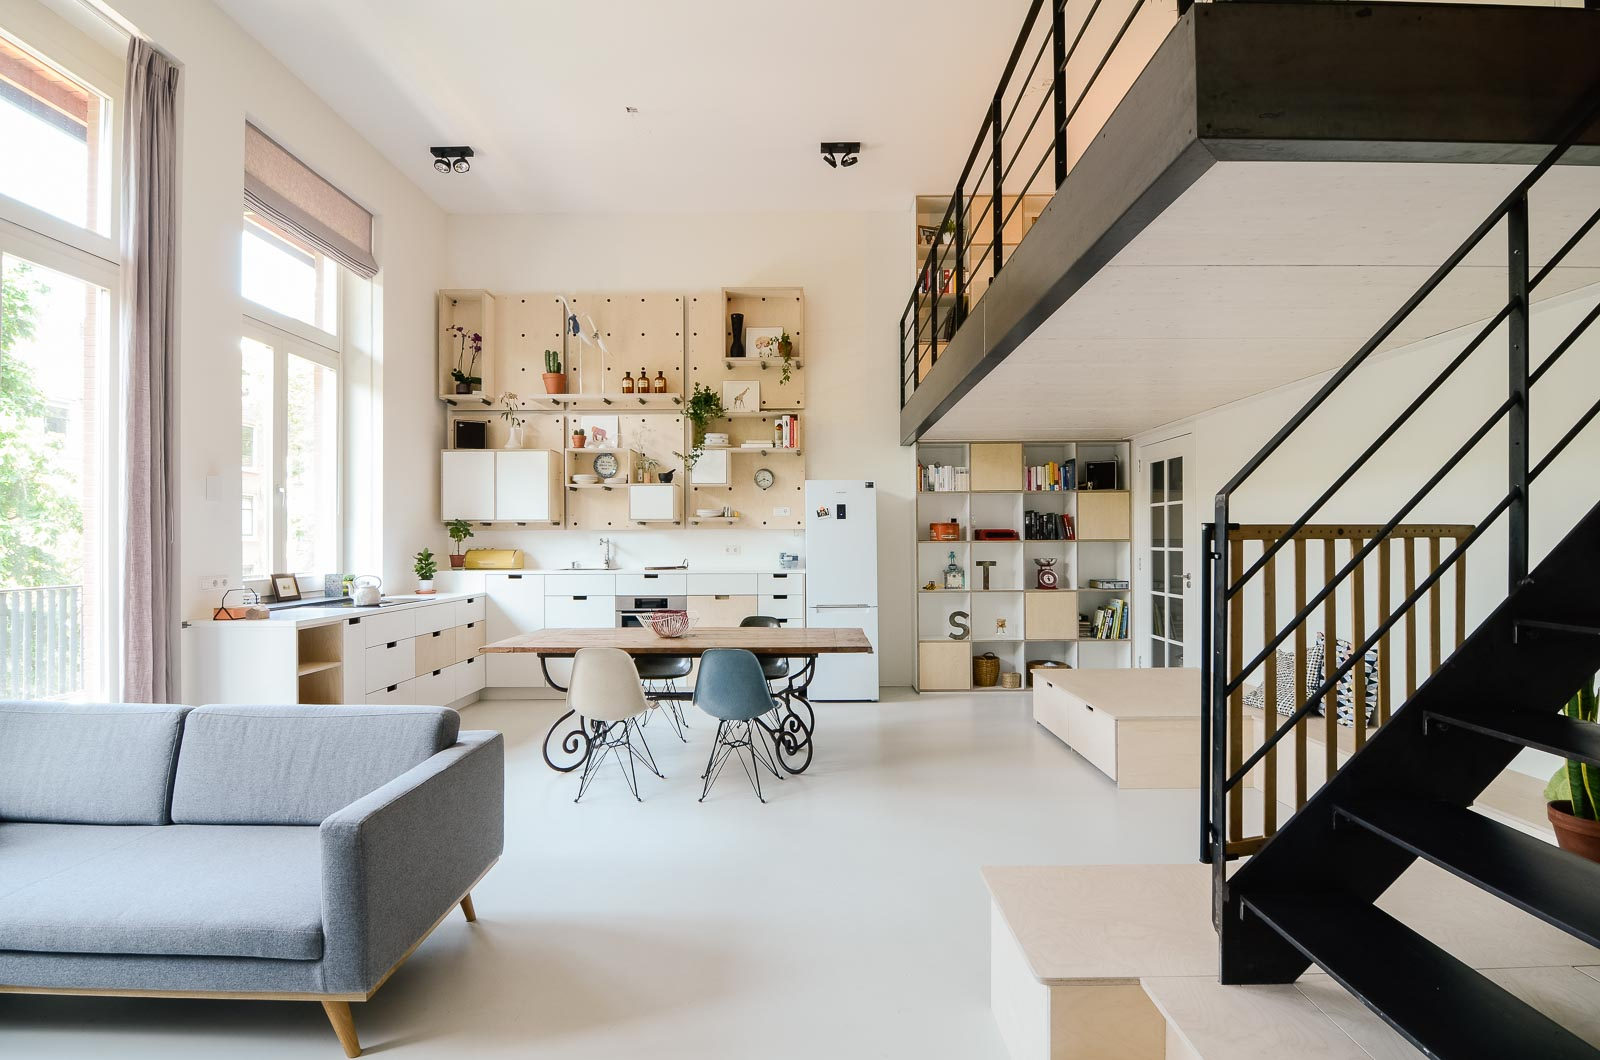 Amsterdam s old school converted into modern apartment ons dorp